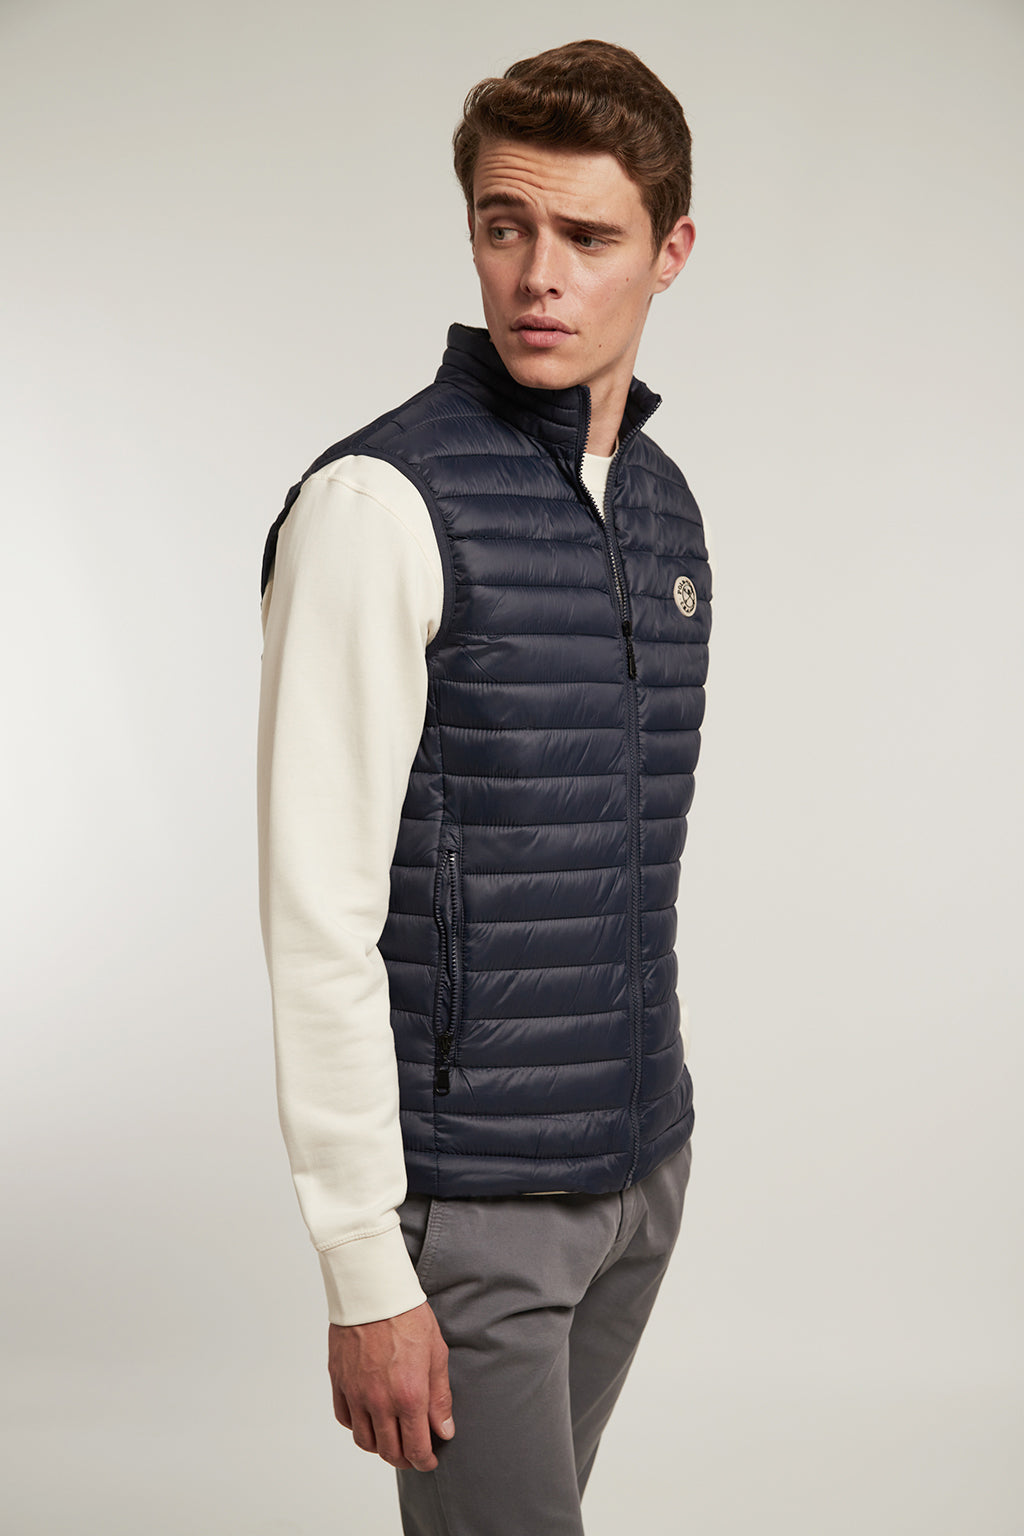 Navy blue quilted vest with slightly high neck